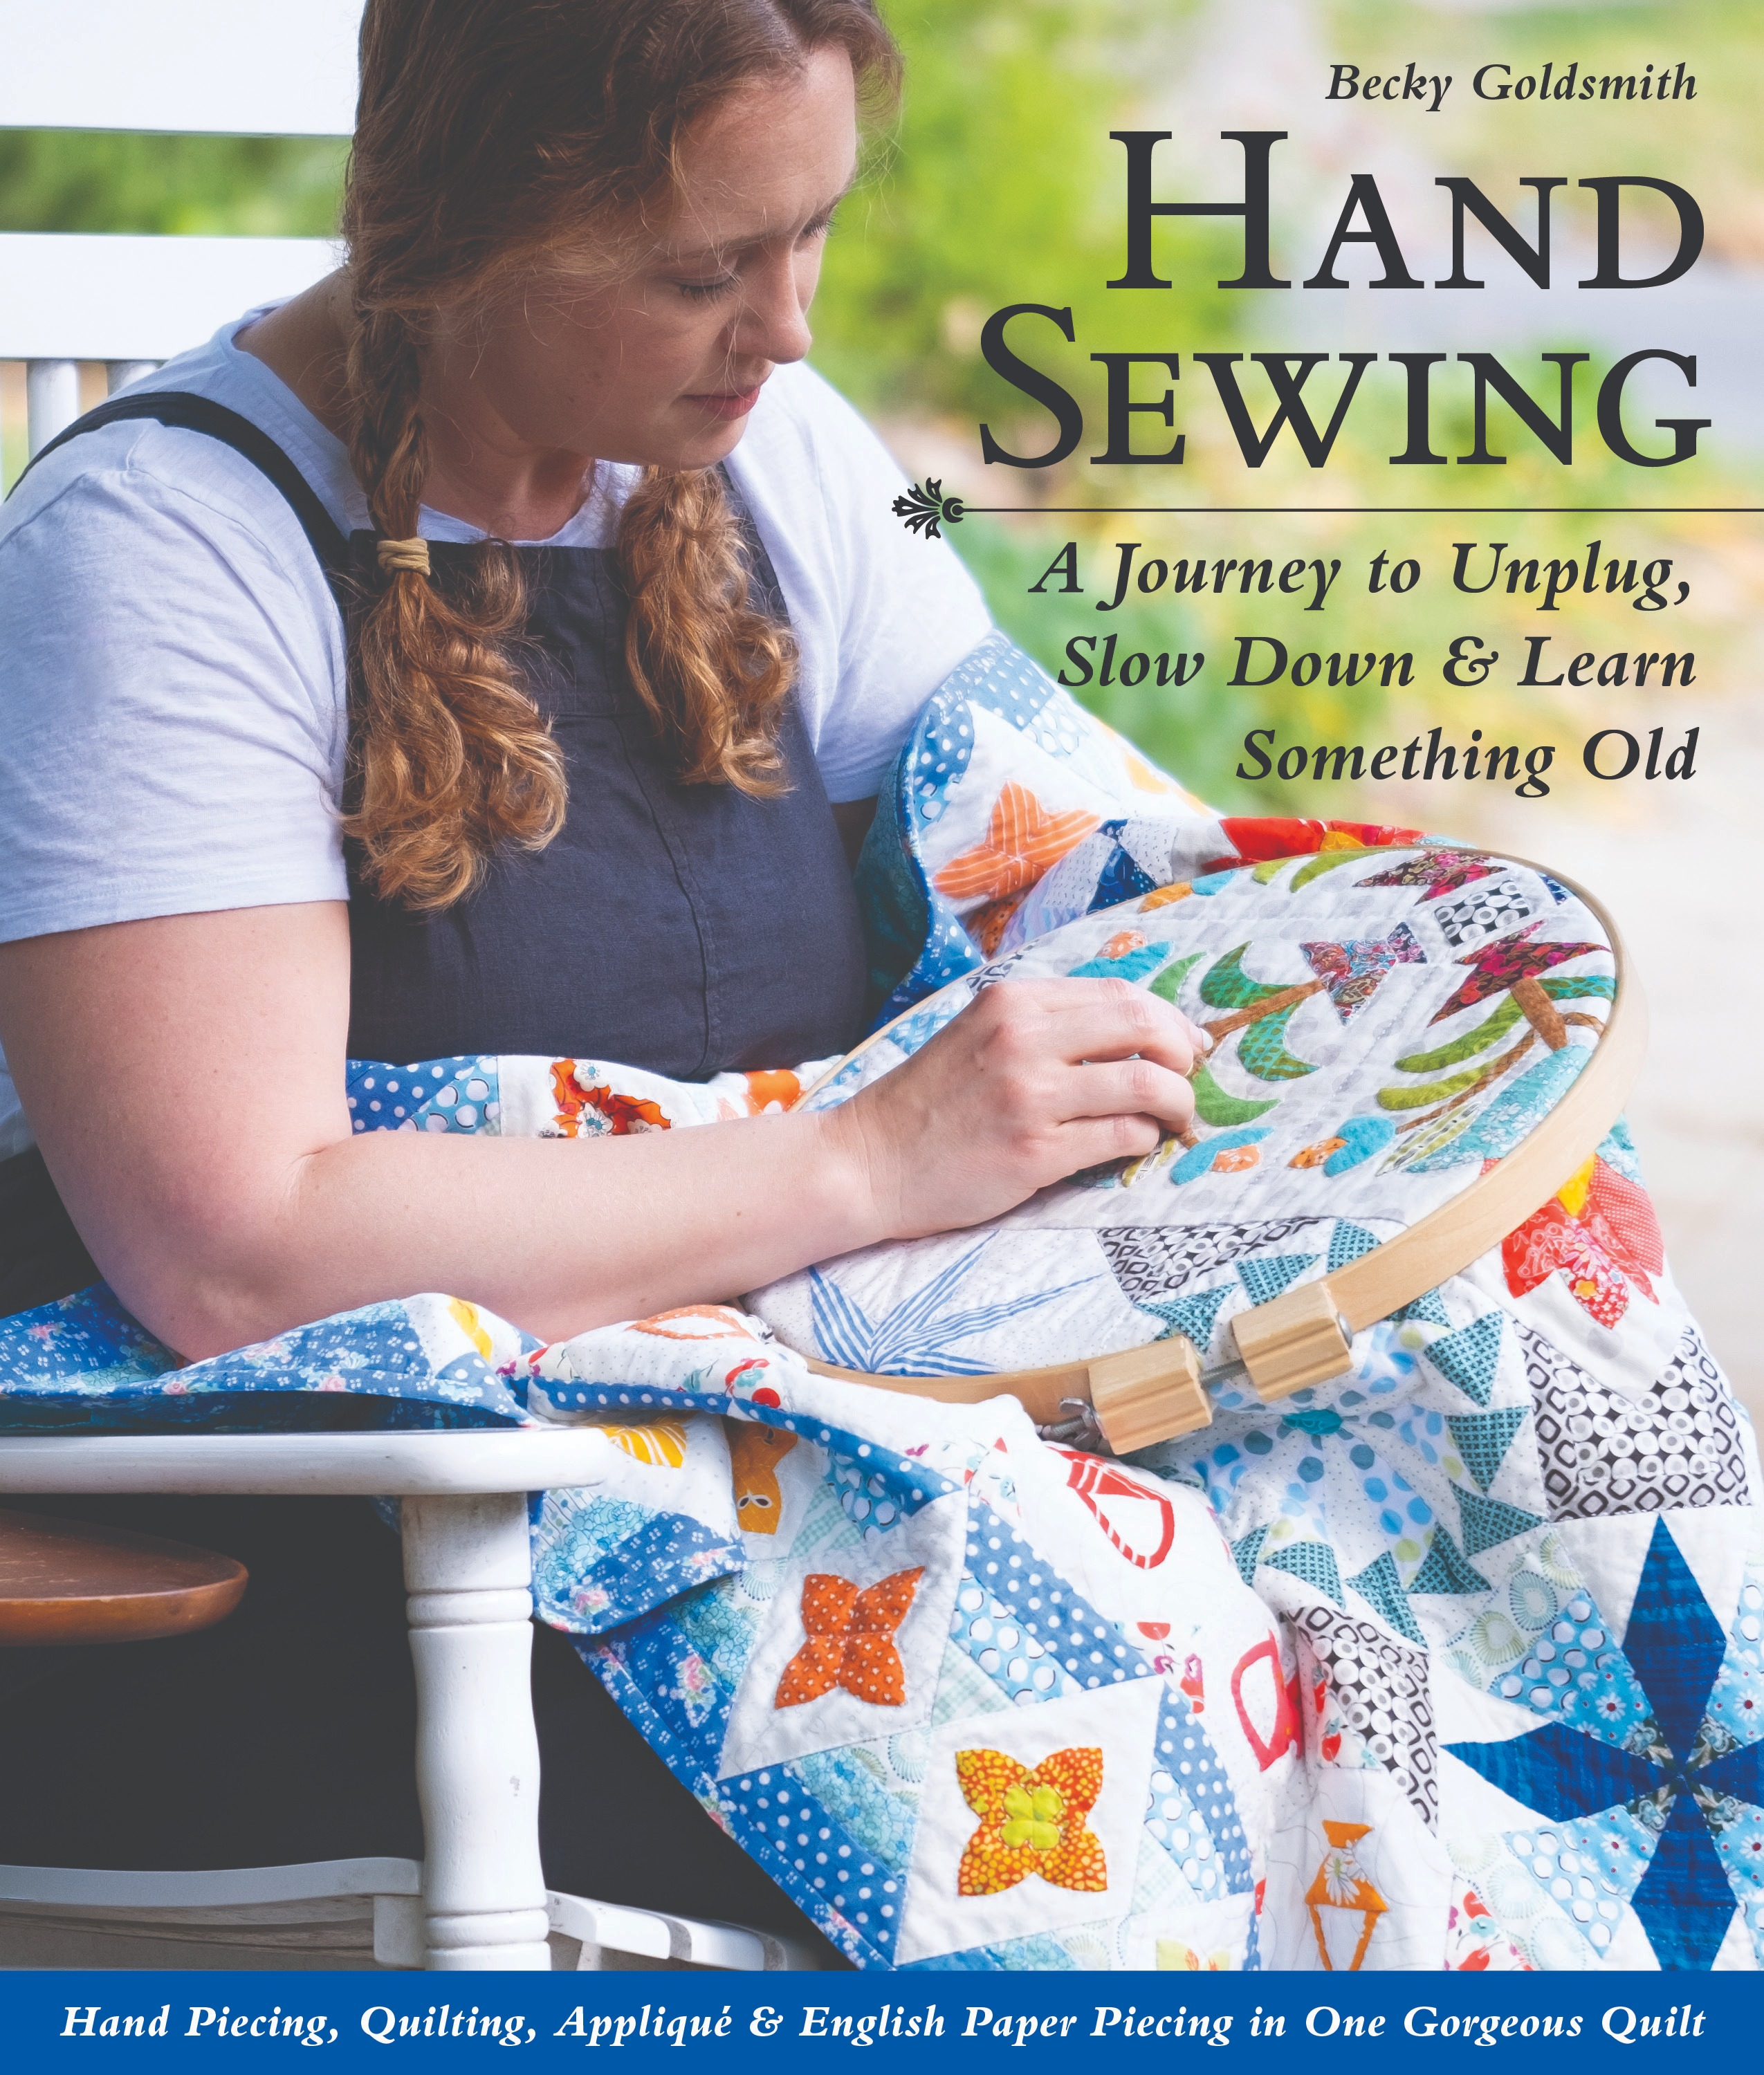 Hand Sewing, A Journey to Unplug, Slow Down & Learn Something Old